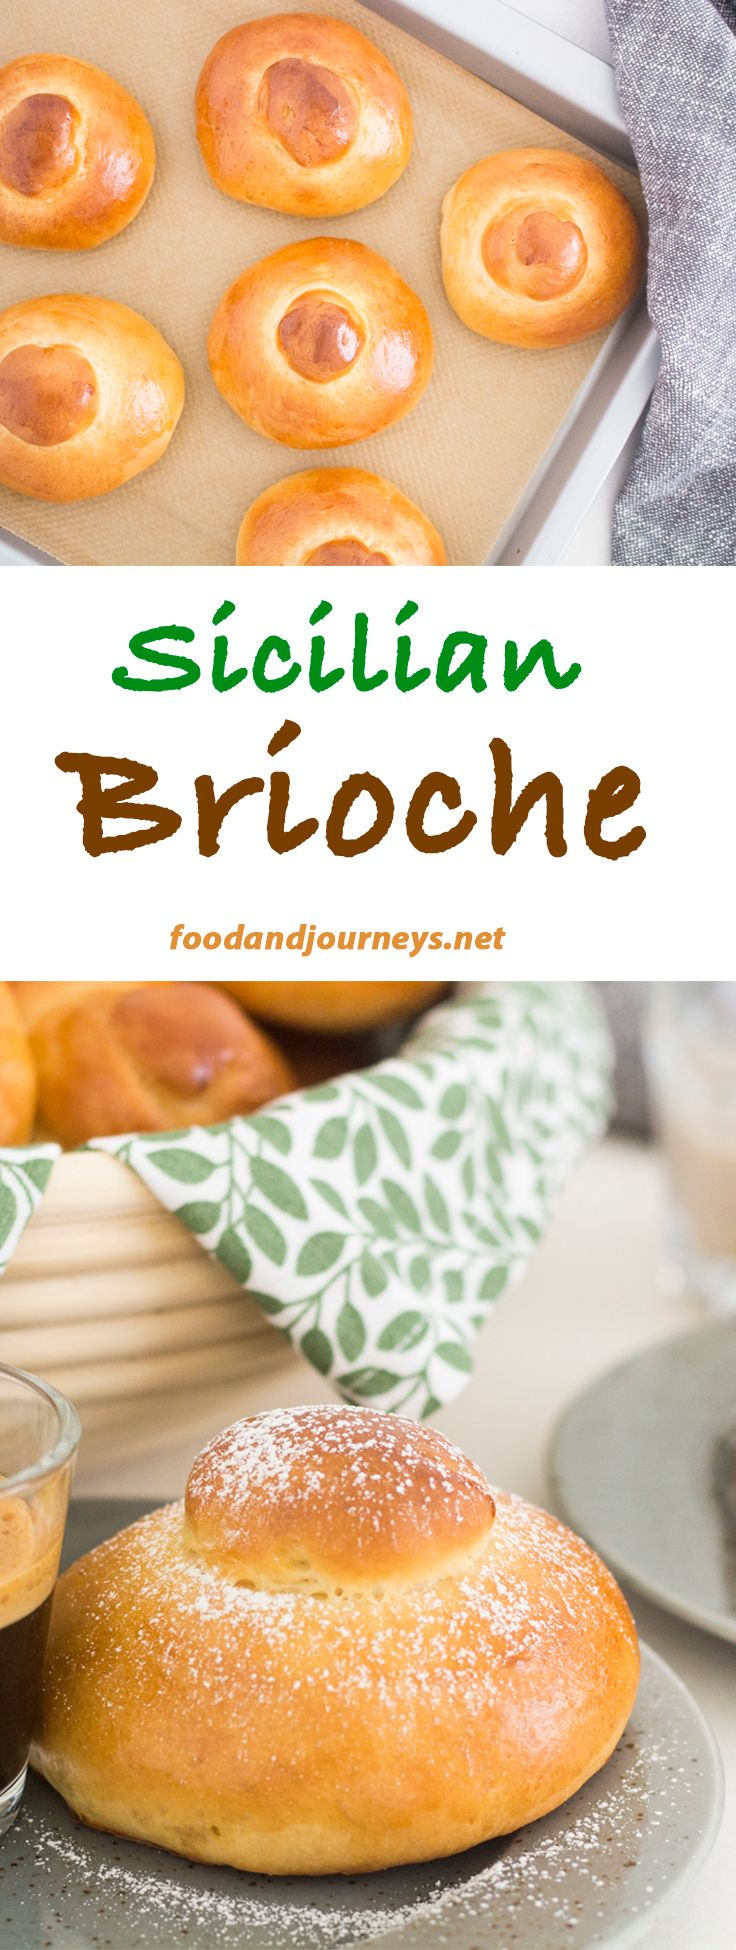 Bread | Italian | Sicilian | Snack. Sicilian Brioche is the perfect match for Almond Granita! You can enjoy this bread as snack or breakfast -- exactly how the Sicilians like it!